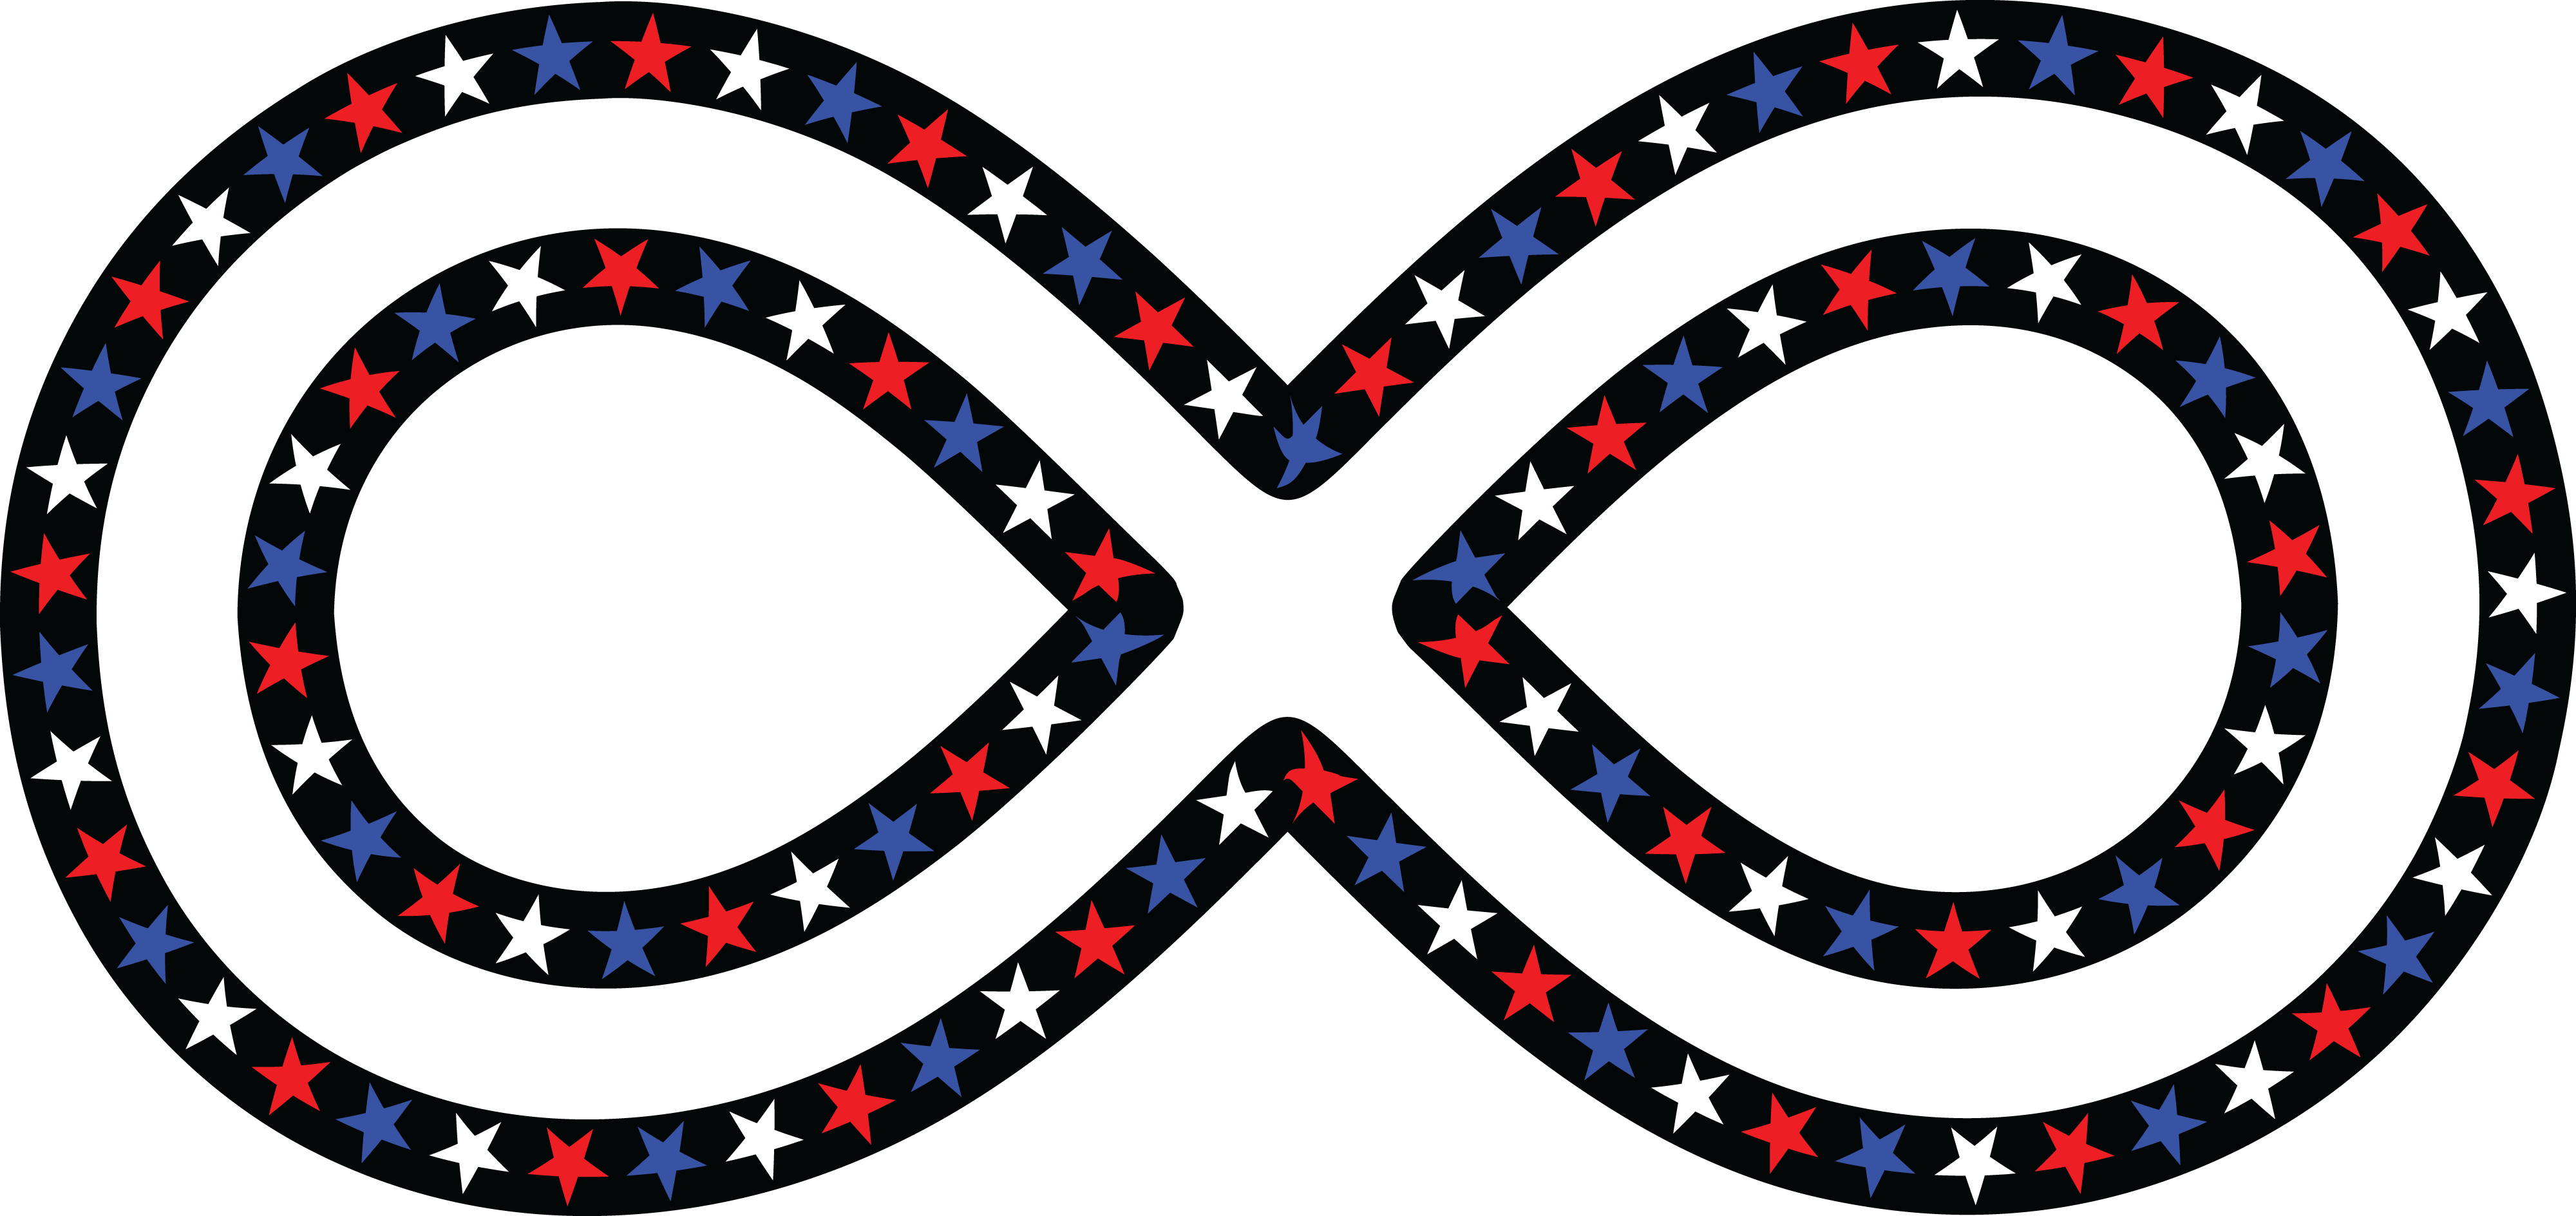 4000x1888 Free Clipart Of A Patriotic American Star Patterned Infinity Symbol